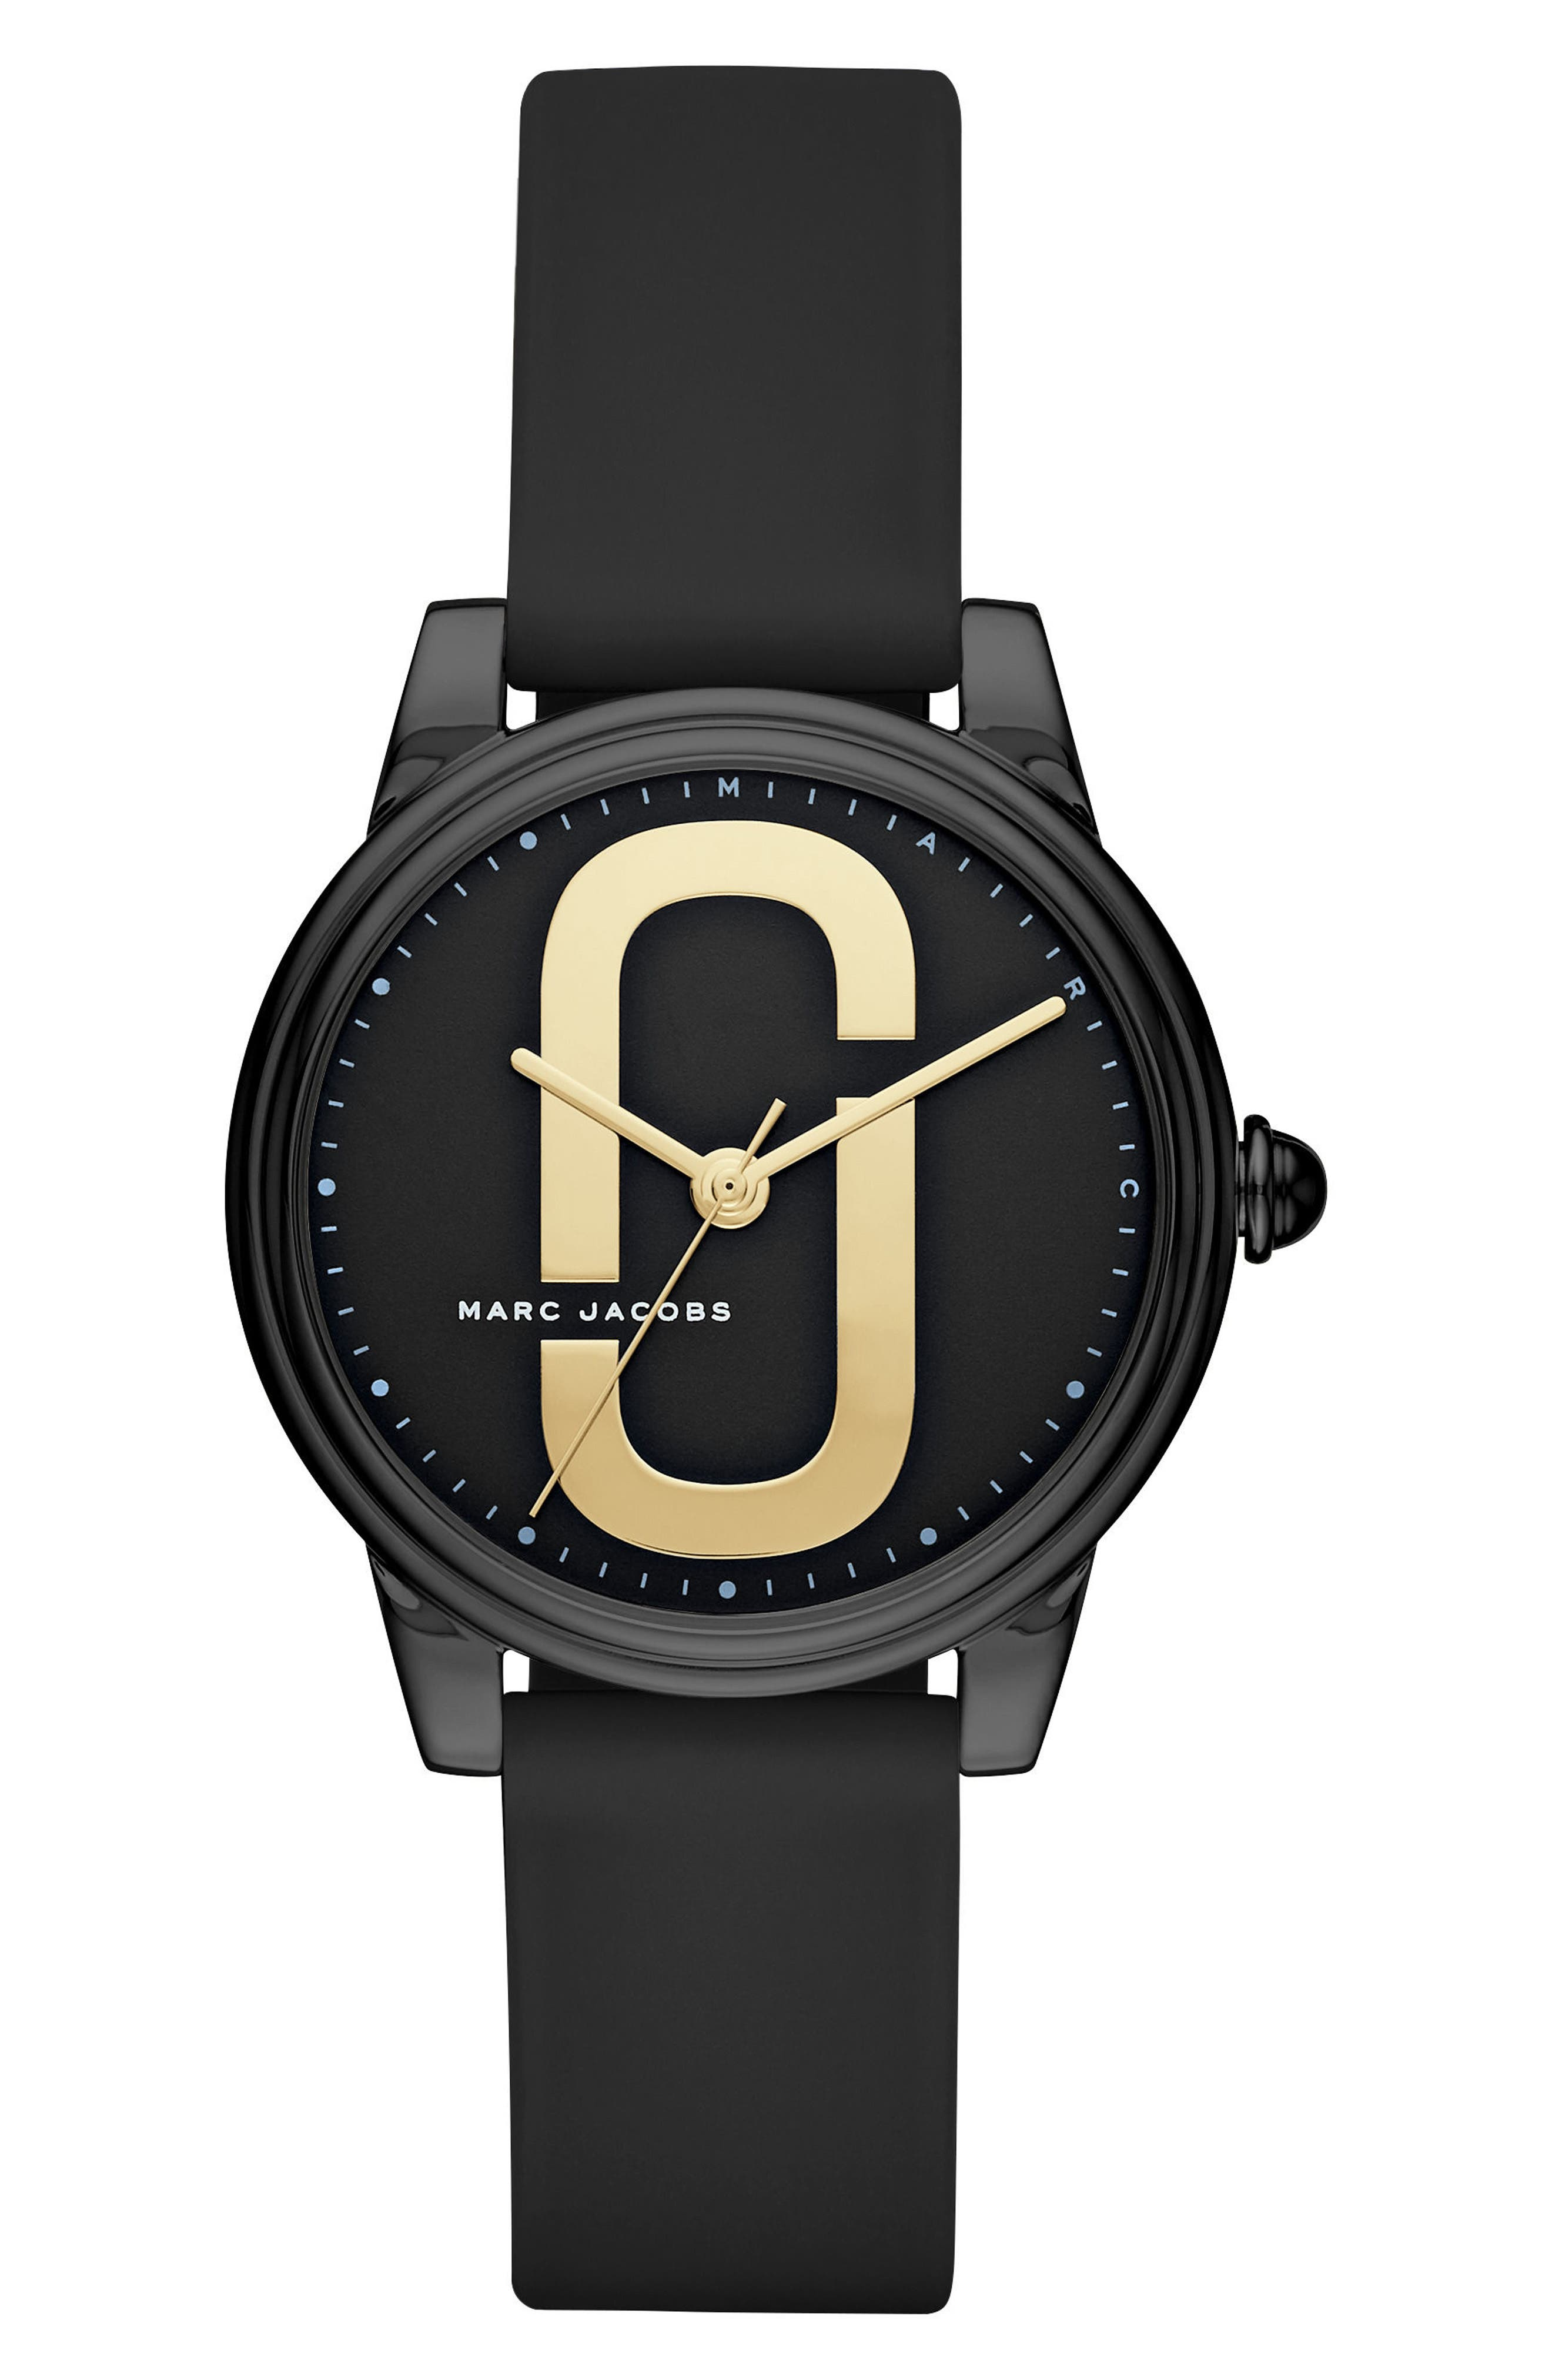 MARC JACOBS Corie Silicone Strap Watch, 36mm